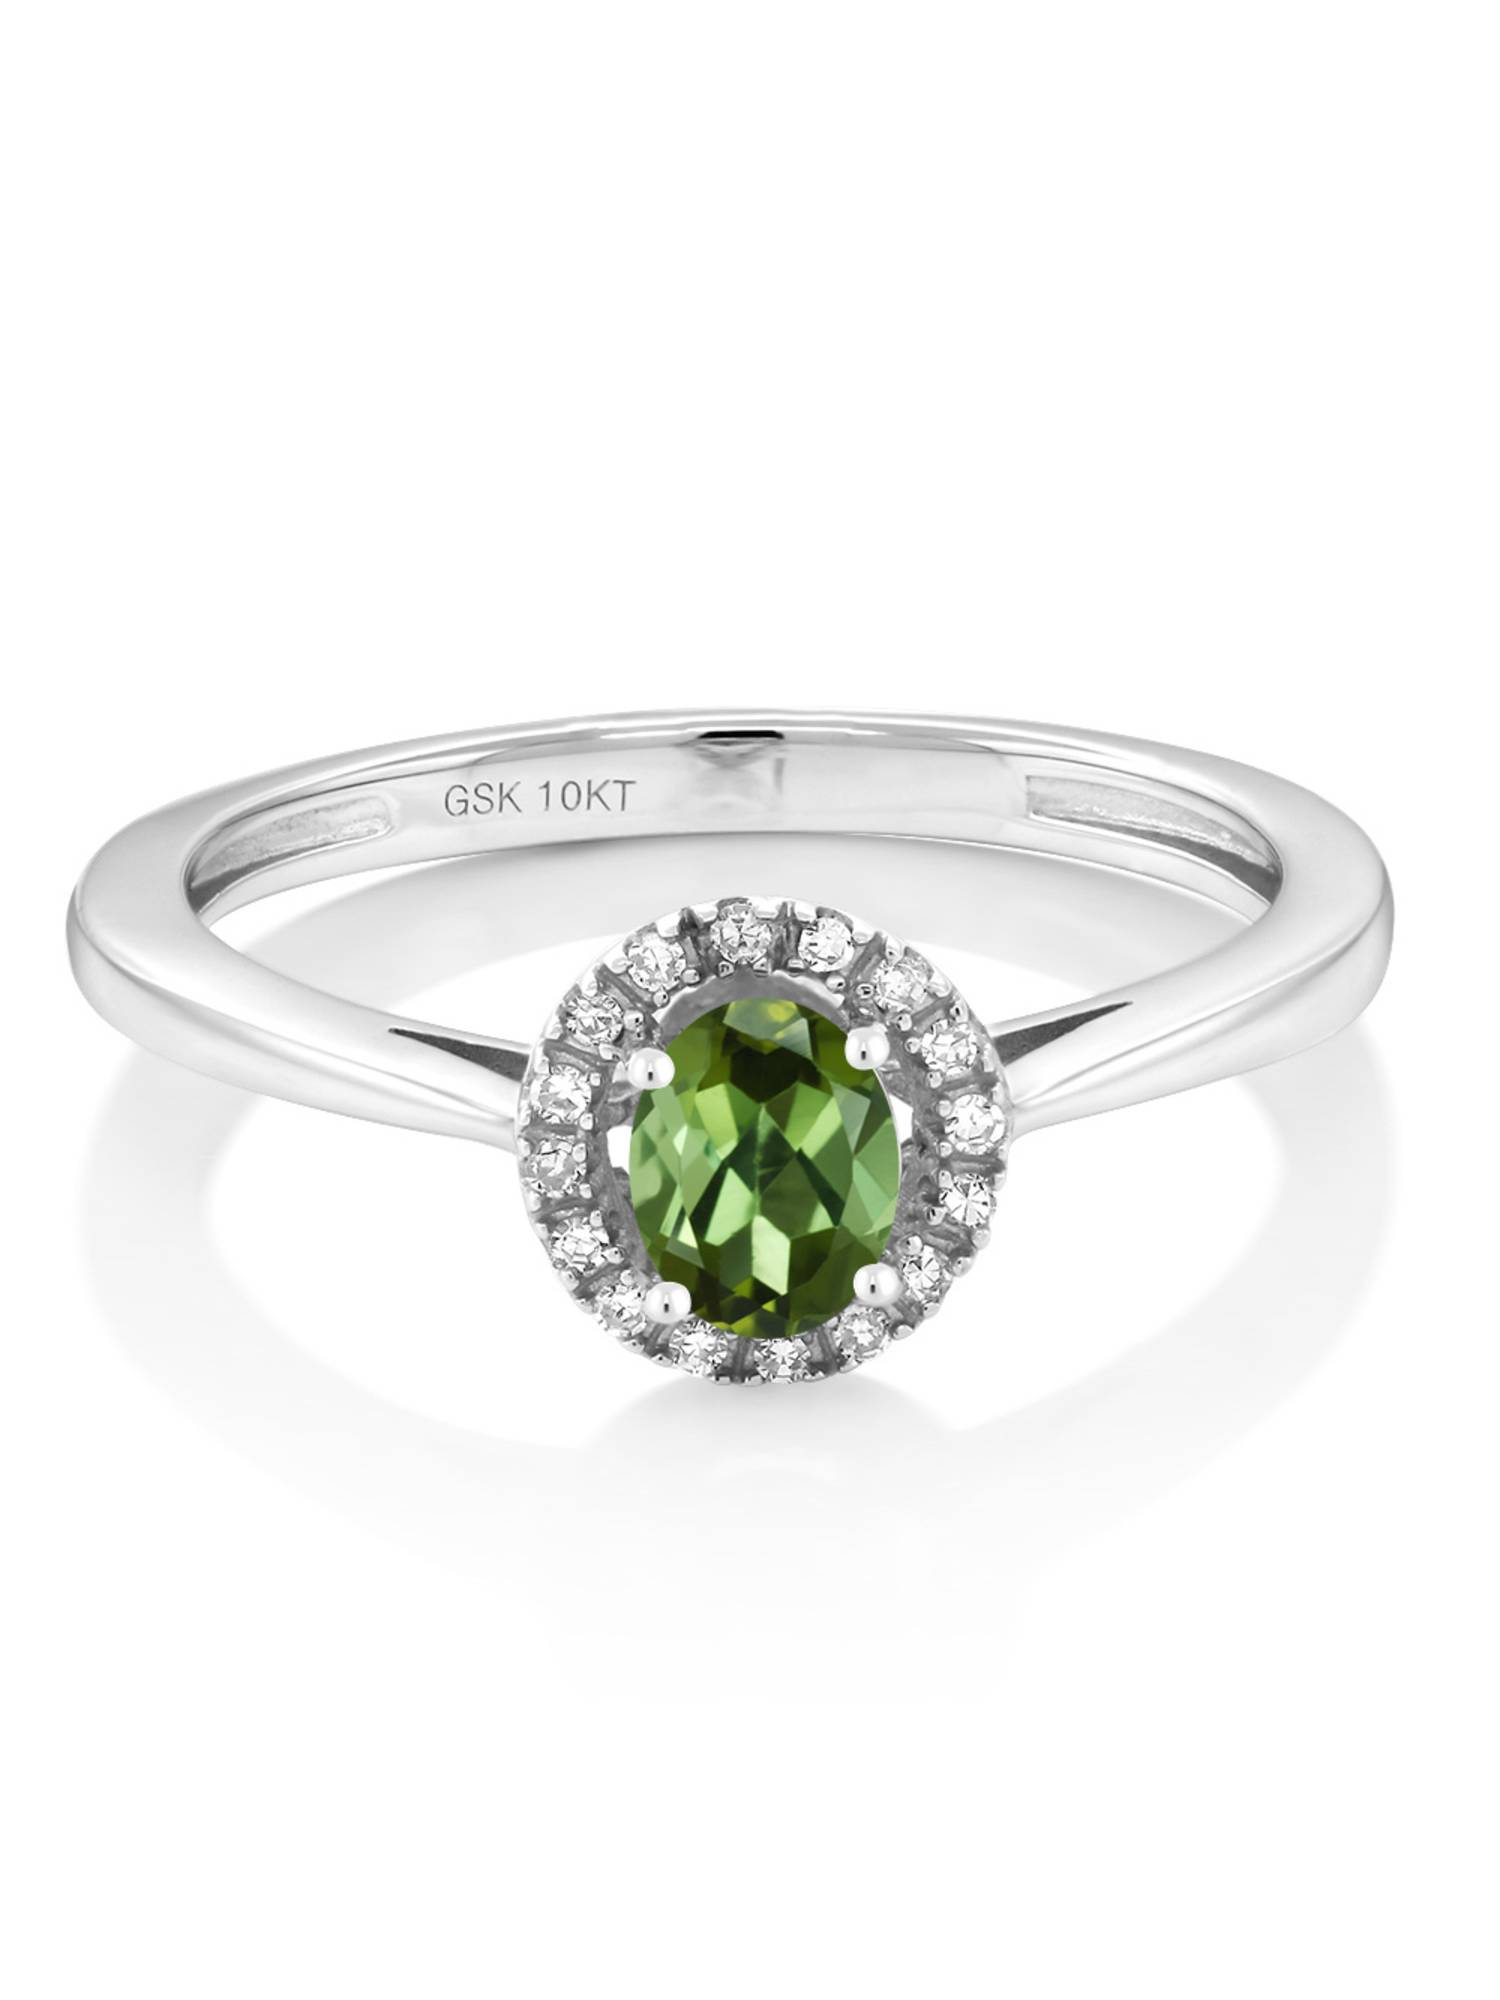 10K White Gold Diamond Engagement Ring with Oval Green Tourmaline by